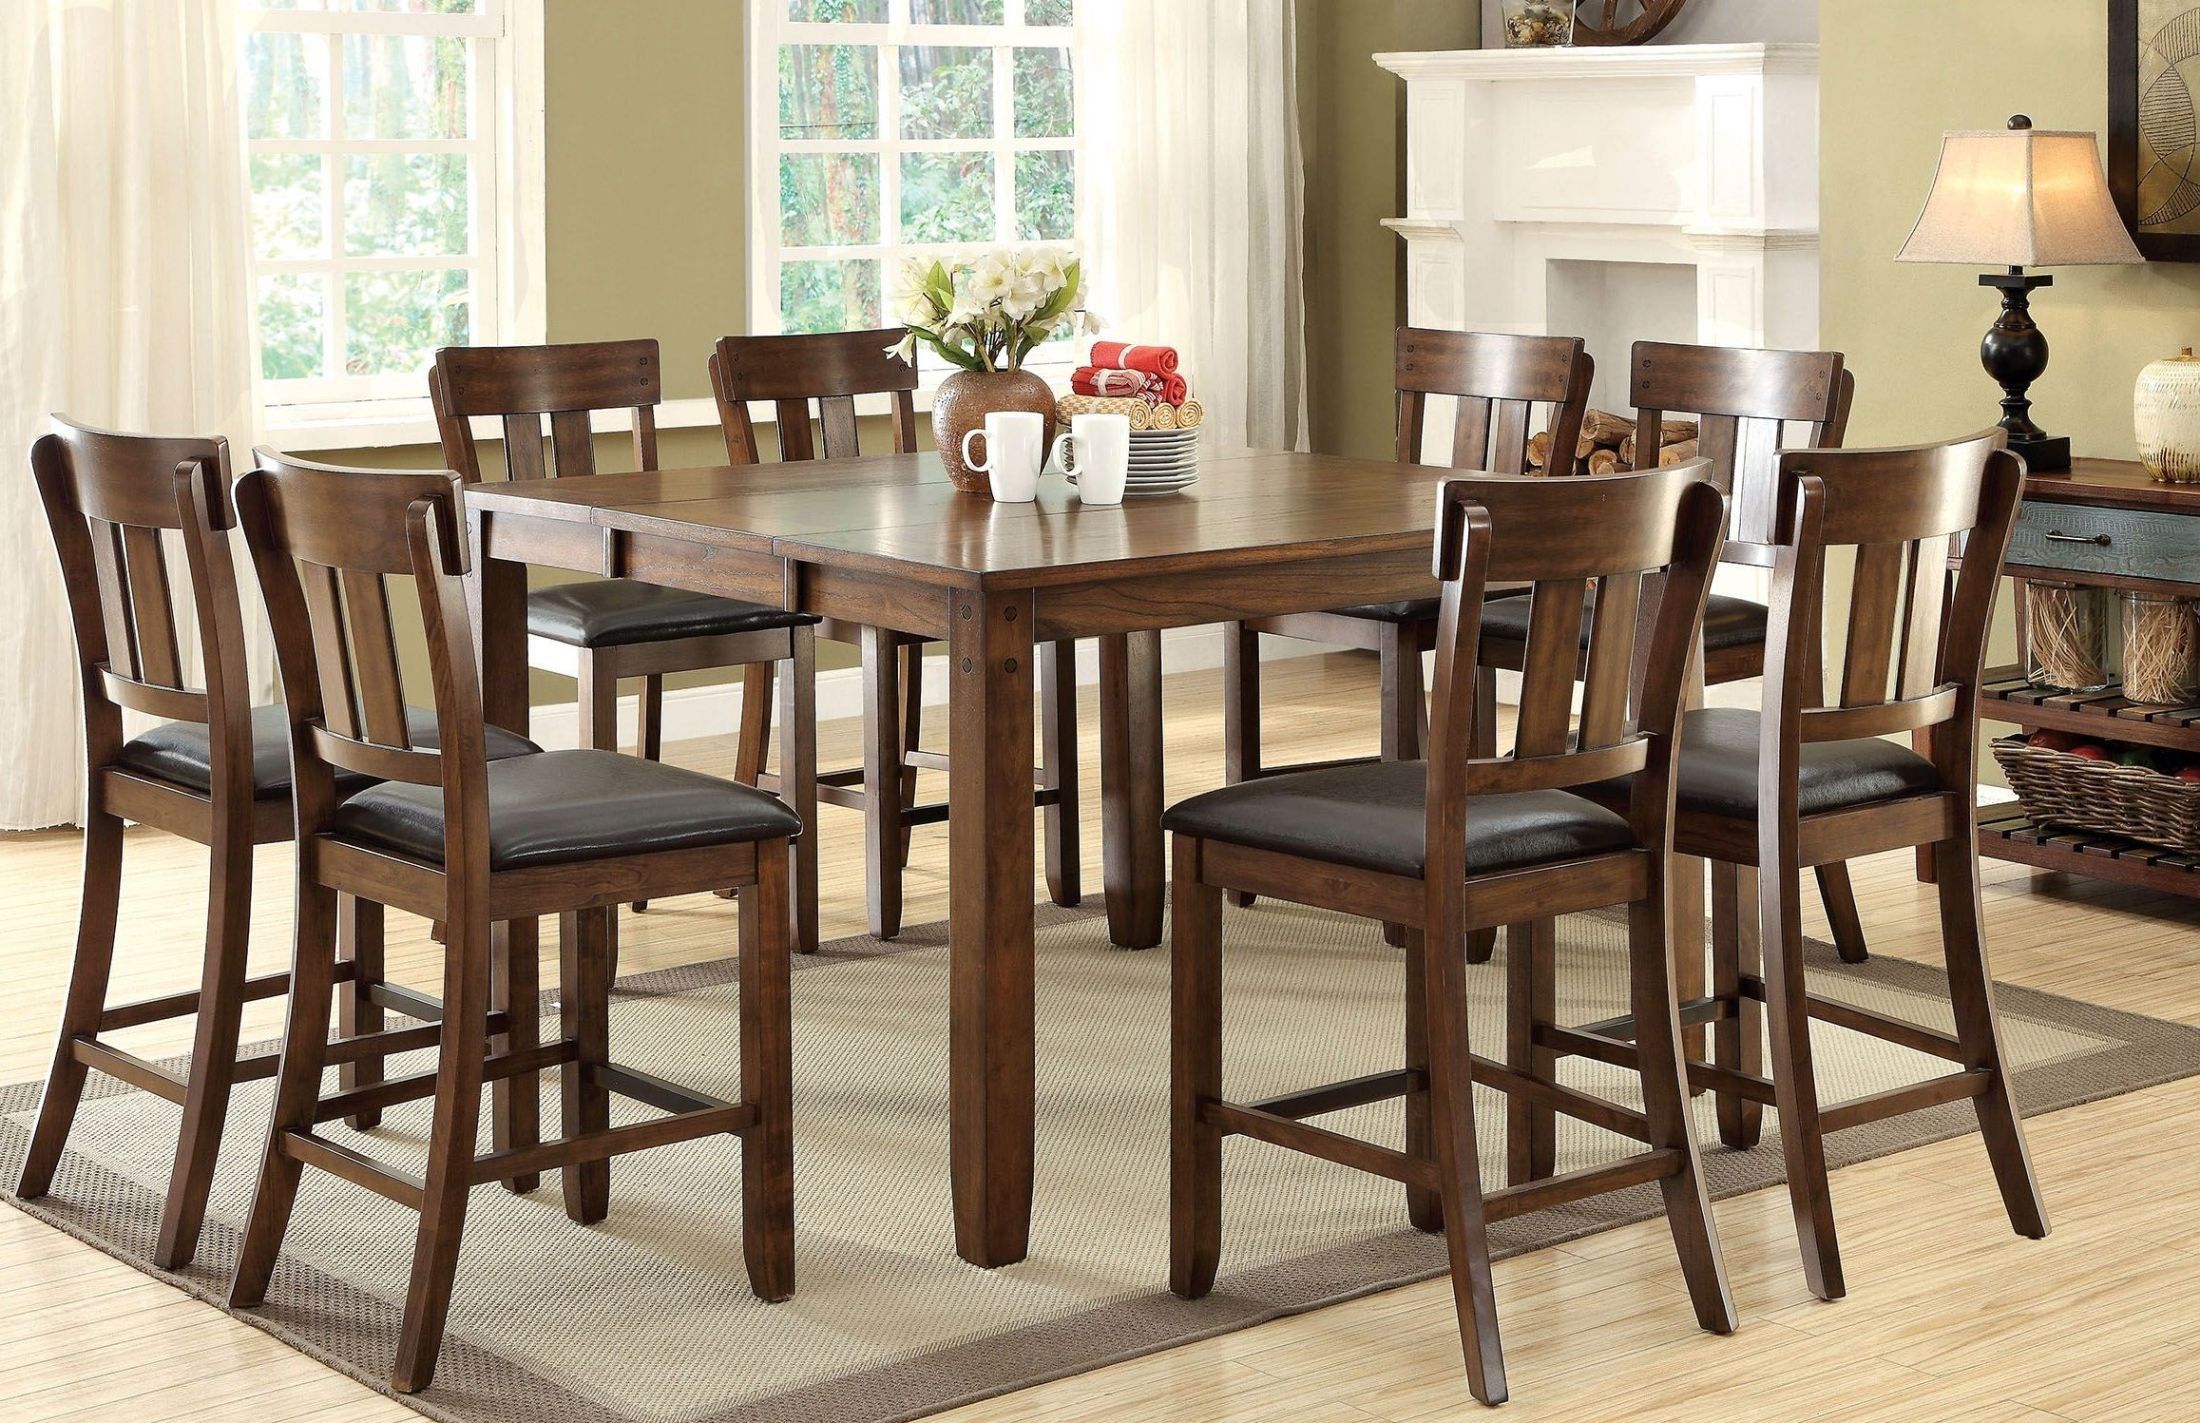 Brockton Ii Rustic Oak Extendable Counter Height Dining Regarding 2017 Counter Height Extendable Dining Tables (View 9 of 15)